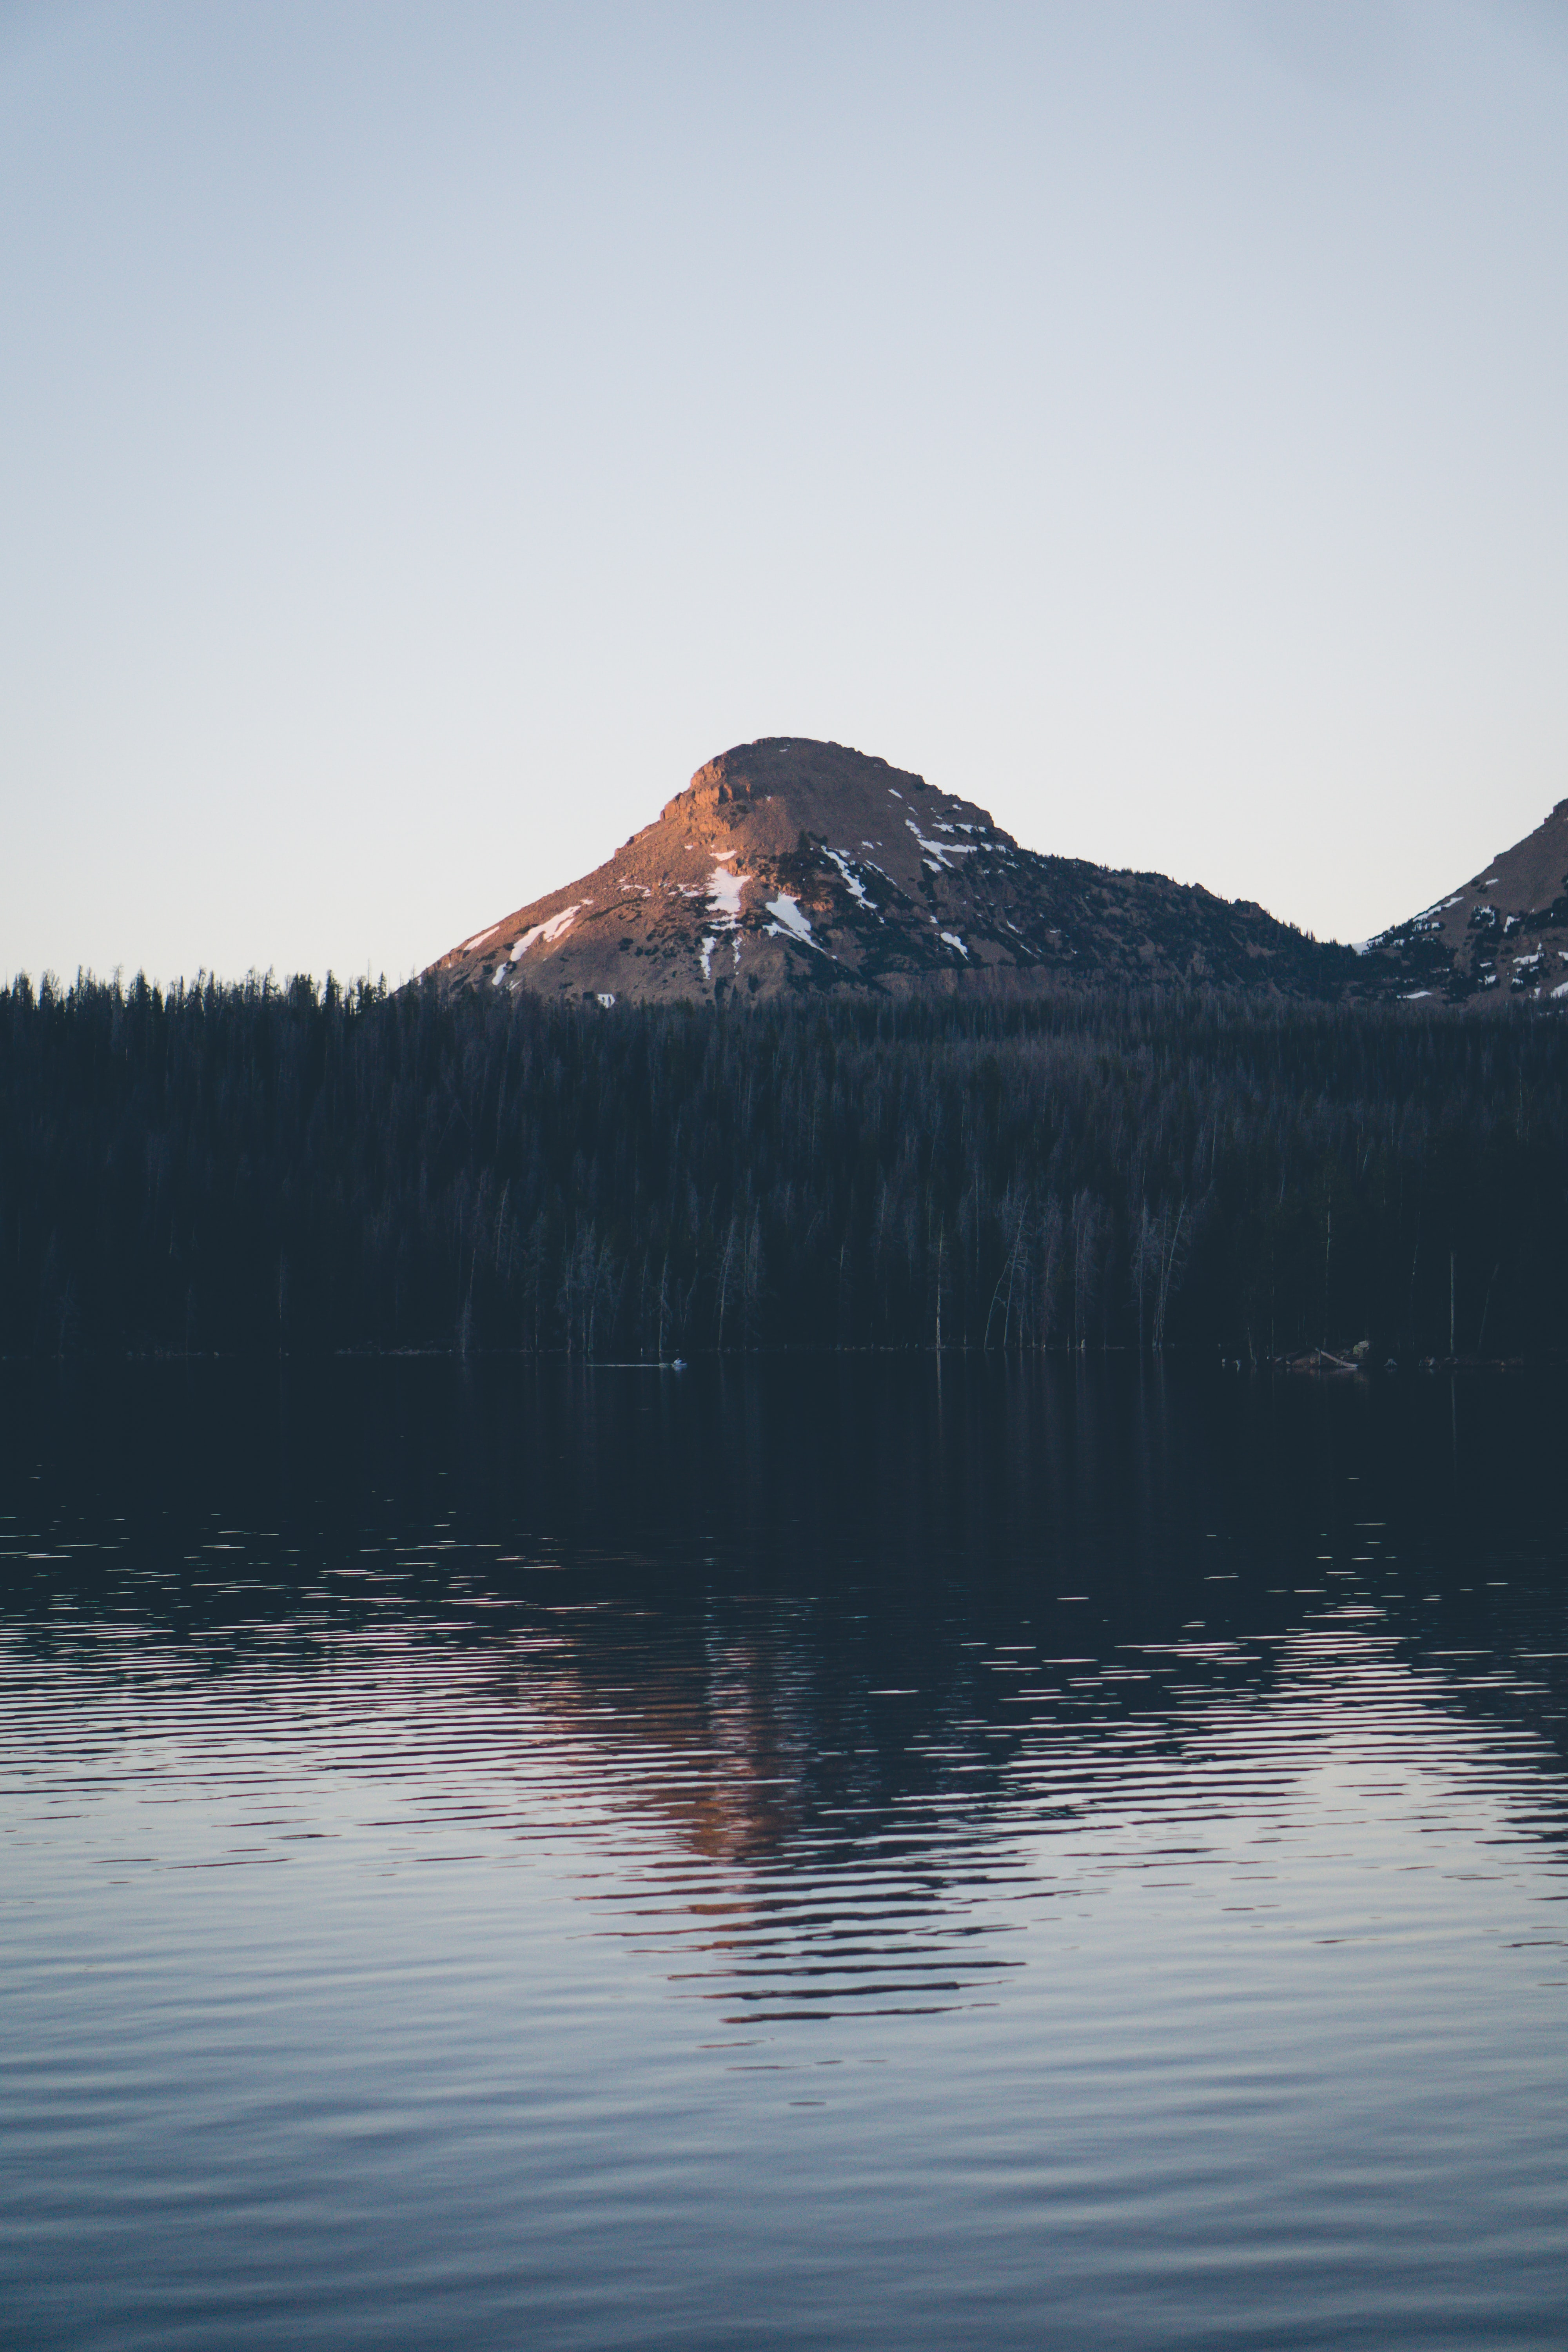 A mountain towering over a tree-lined lake